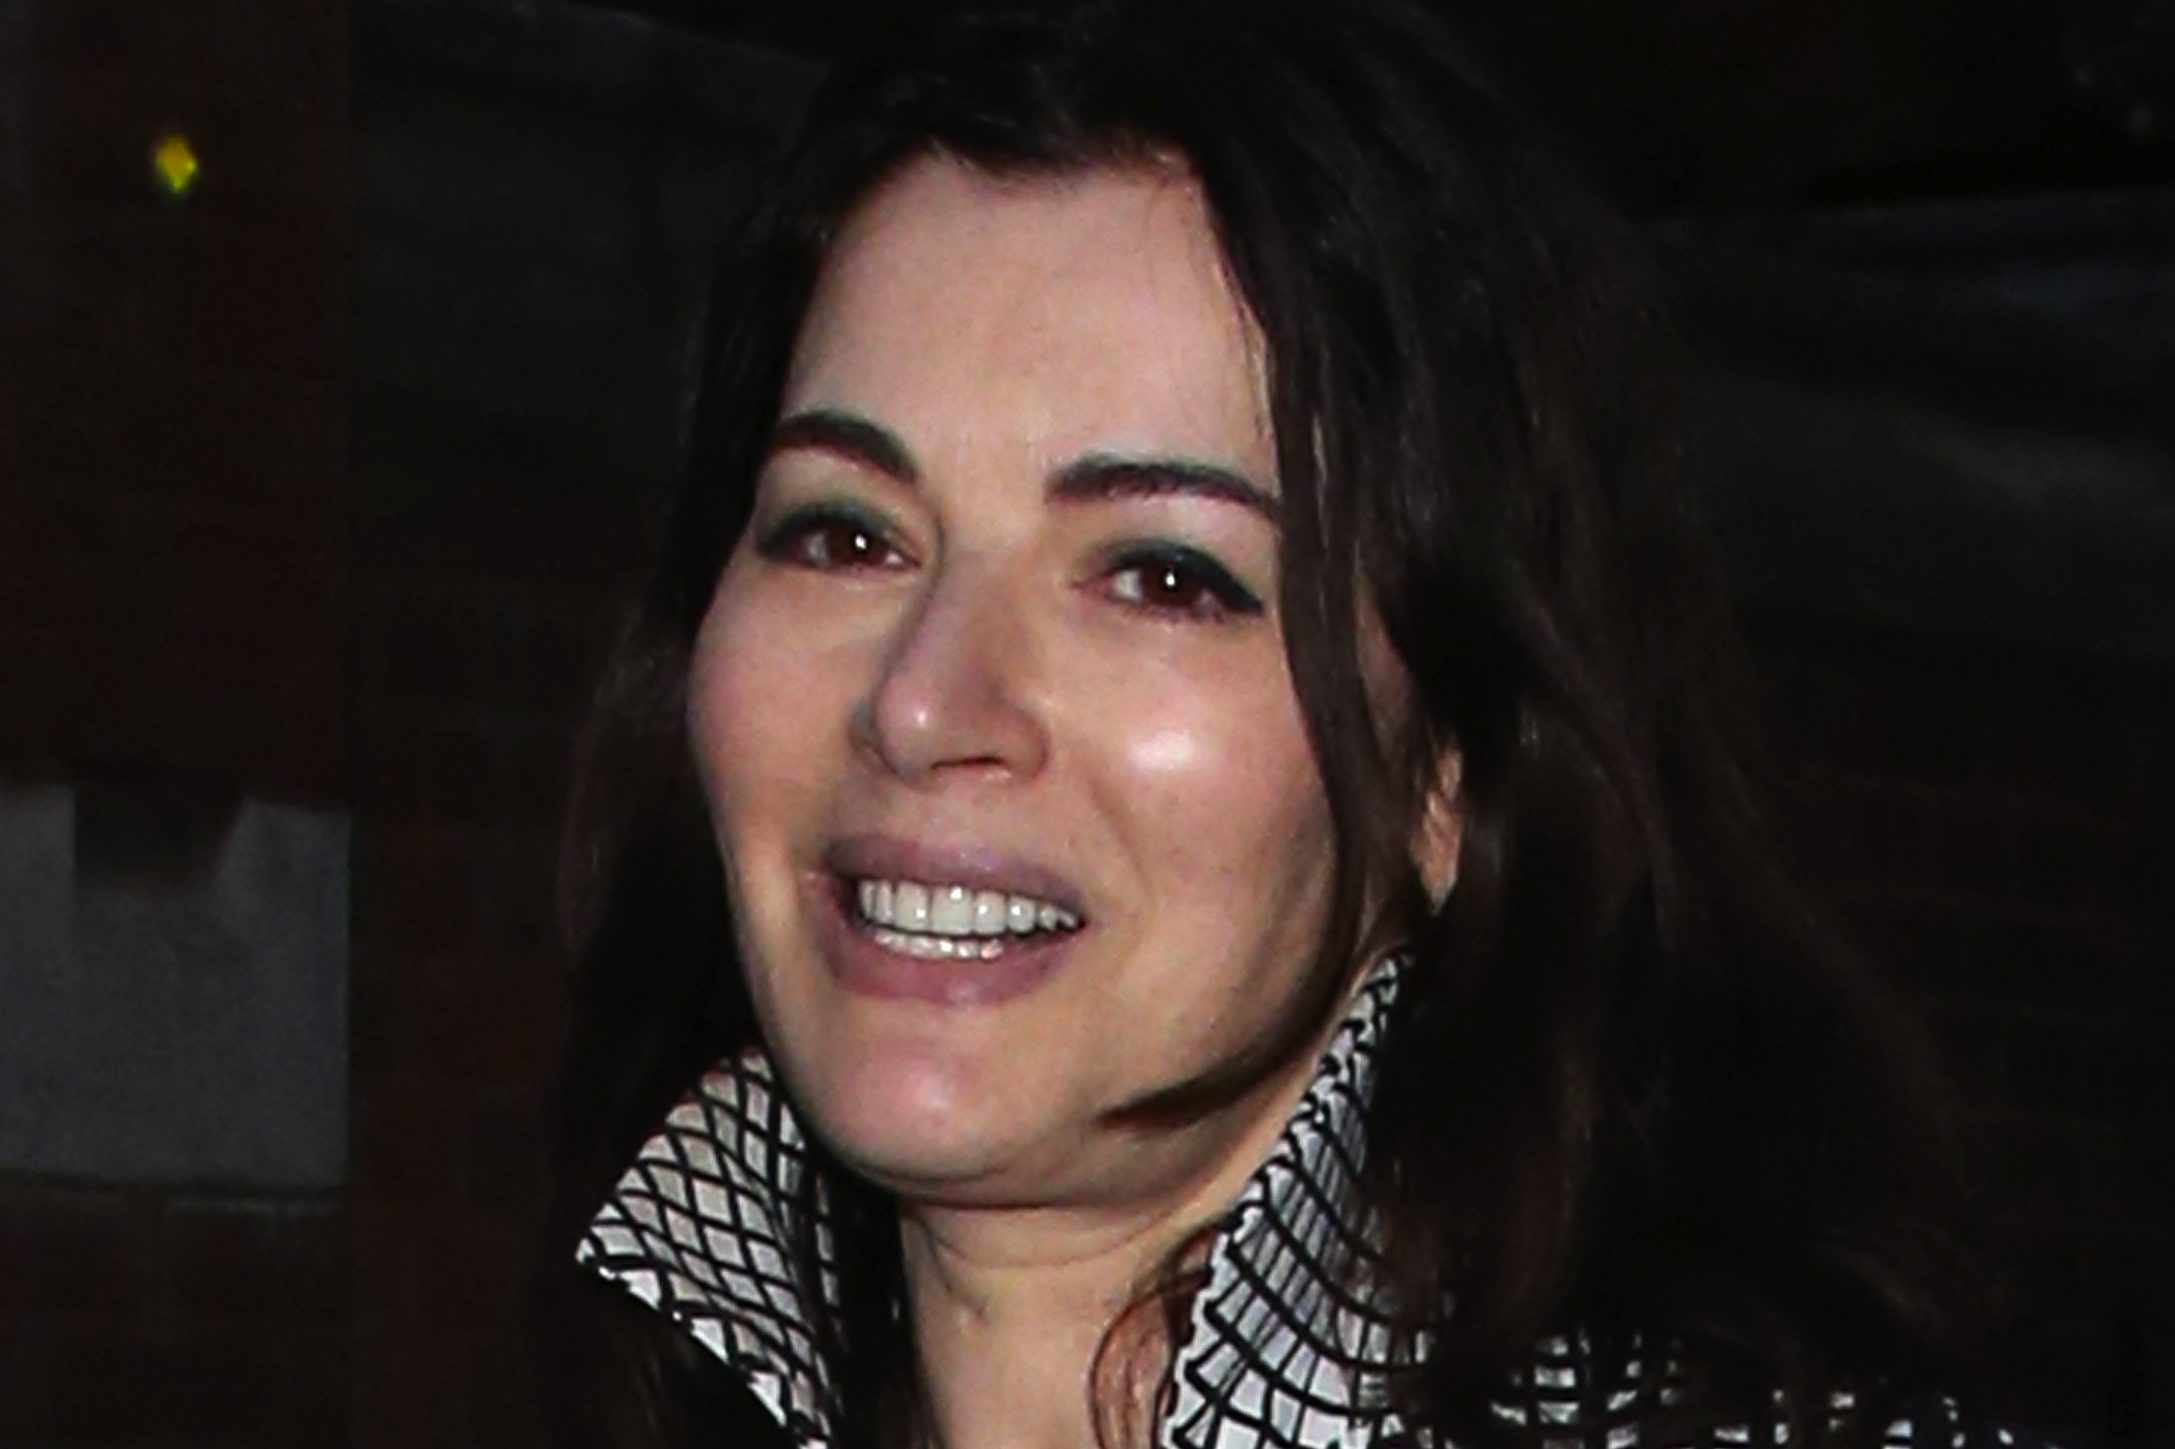 nigella lawson analysis Nigella lawson is an internationally renowned celebrity chef and broadcaster the daughter of former conservative chancellor nigel lawson, the 54-year-old began her career working at the spectator.